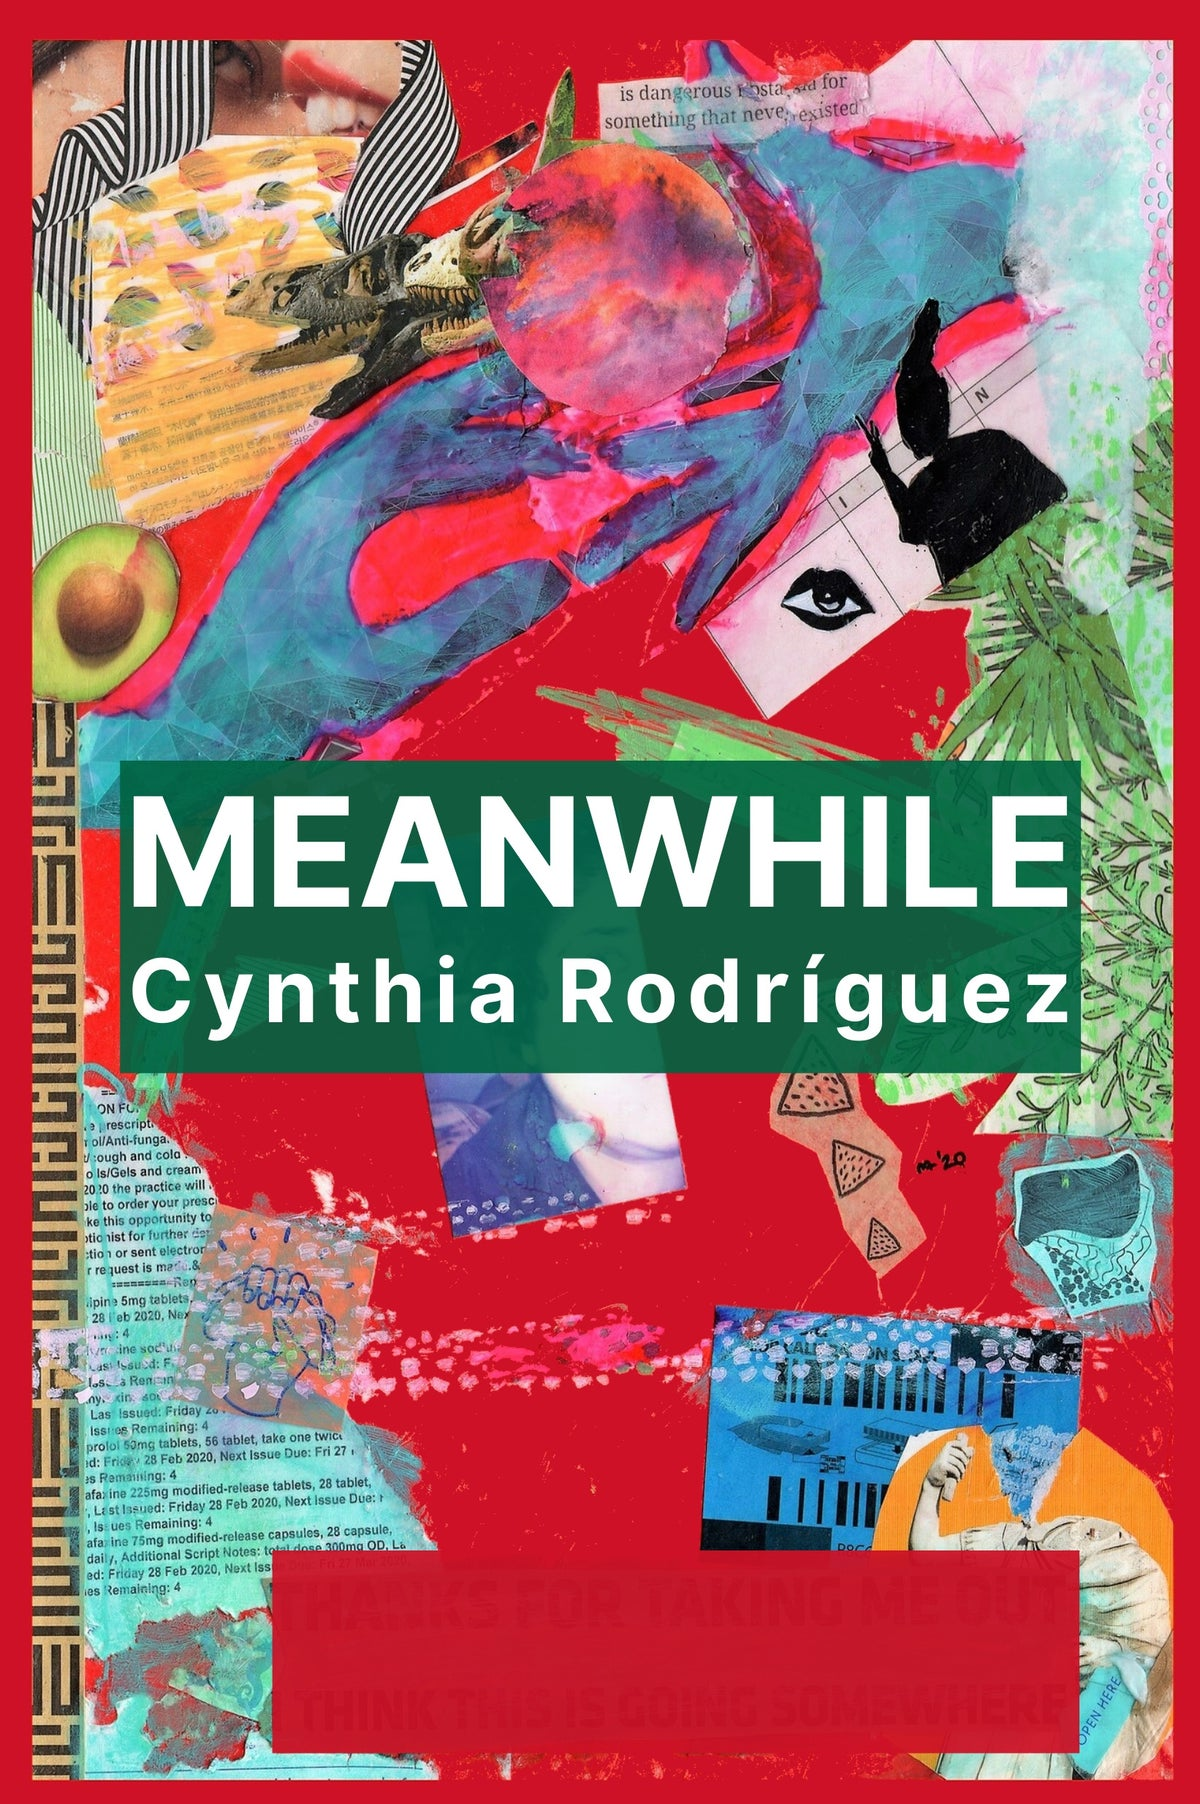 Image of Meanwhile by Cynthia Rodríguez